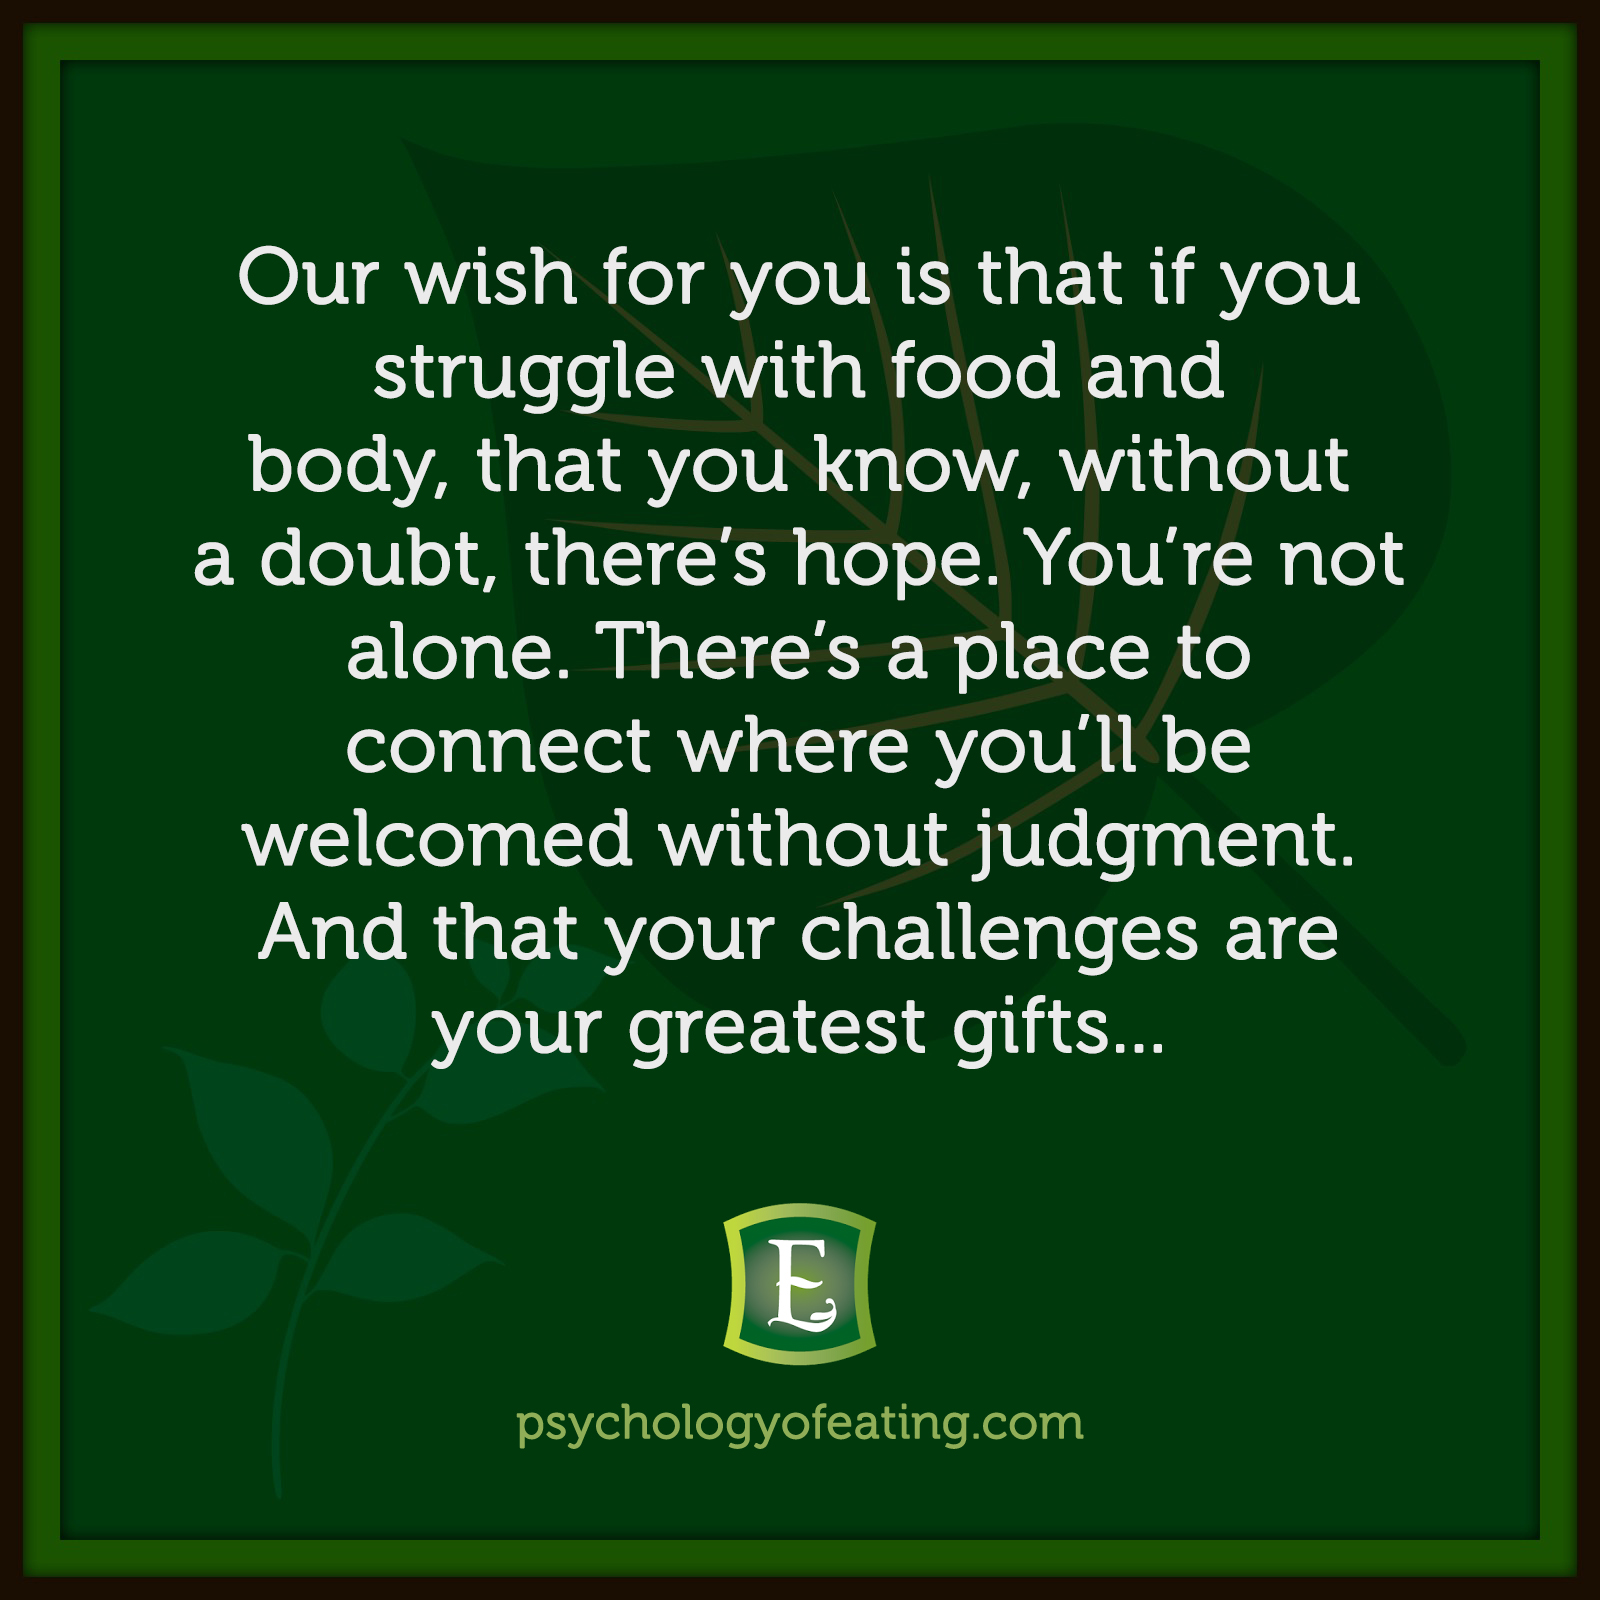 Our wish for you is that if you struggle with food and body, that you know, without a doubt, there's hope. You're not alone. There's a place to connect where you'll be welcomed without judgment. And that your challenges are your greatest gifts… #health #nutrition #eatingpsychology #IPE